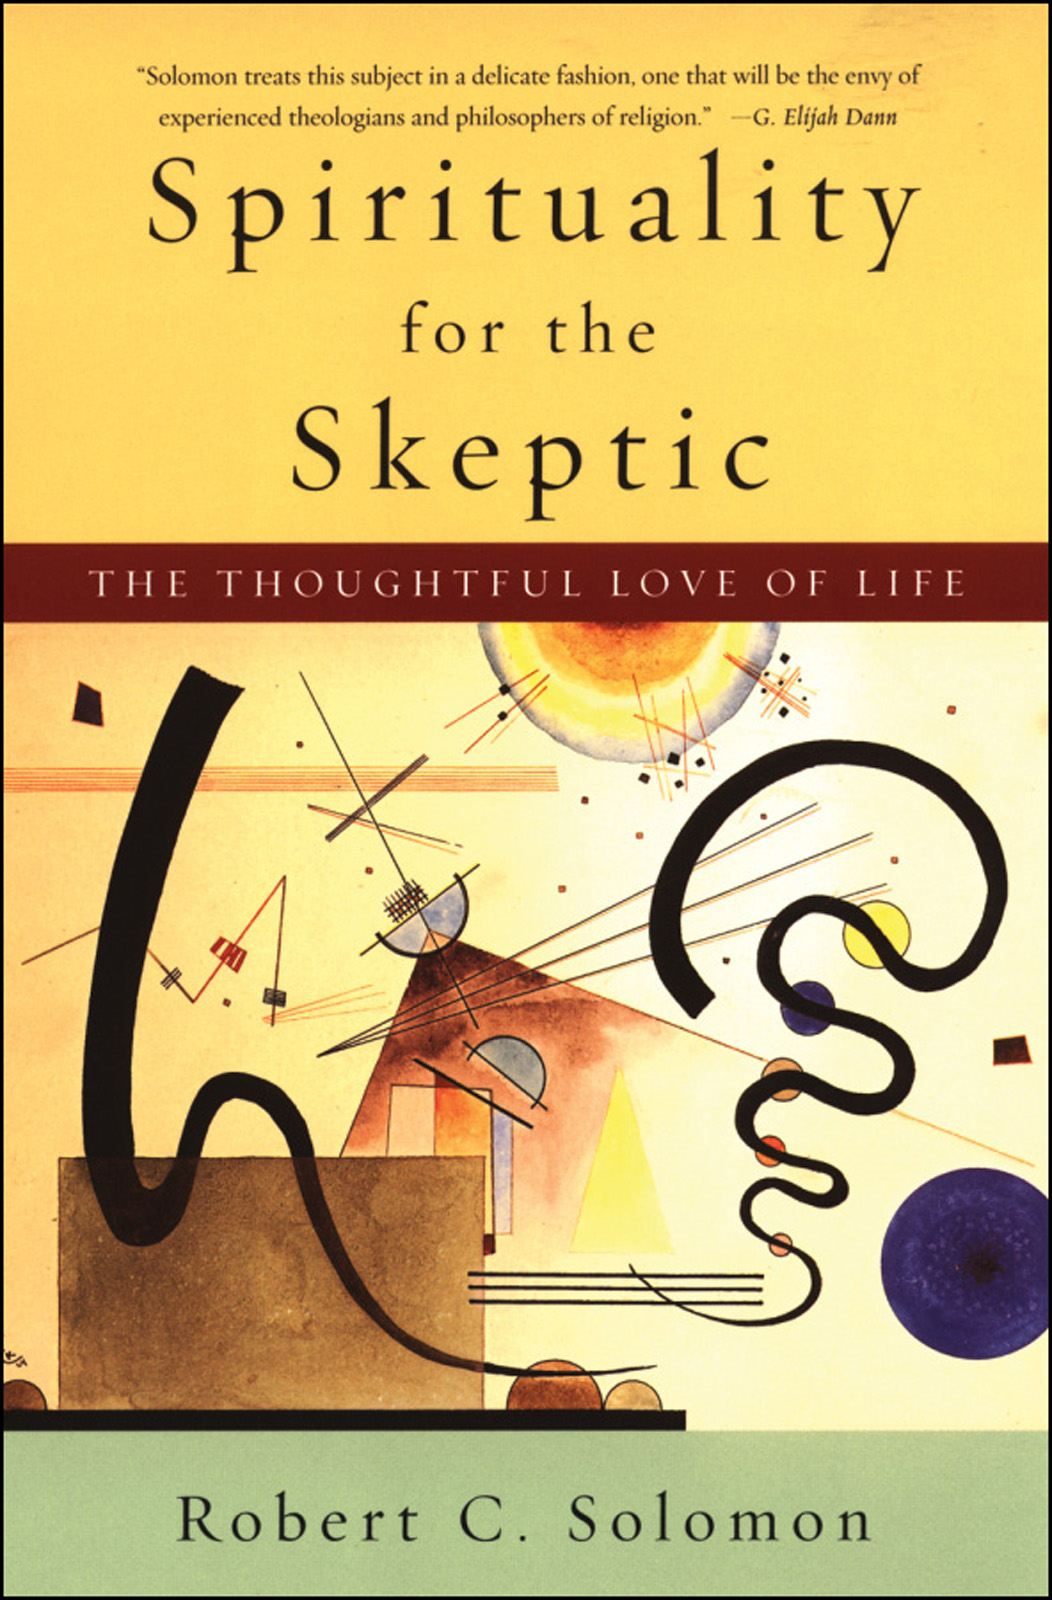 Spirituality for the Skeptic : The Thoughtful Love of Life